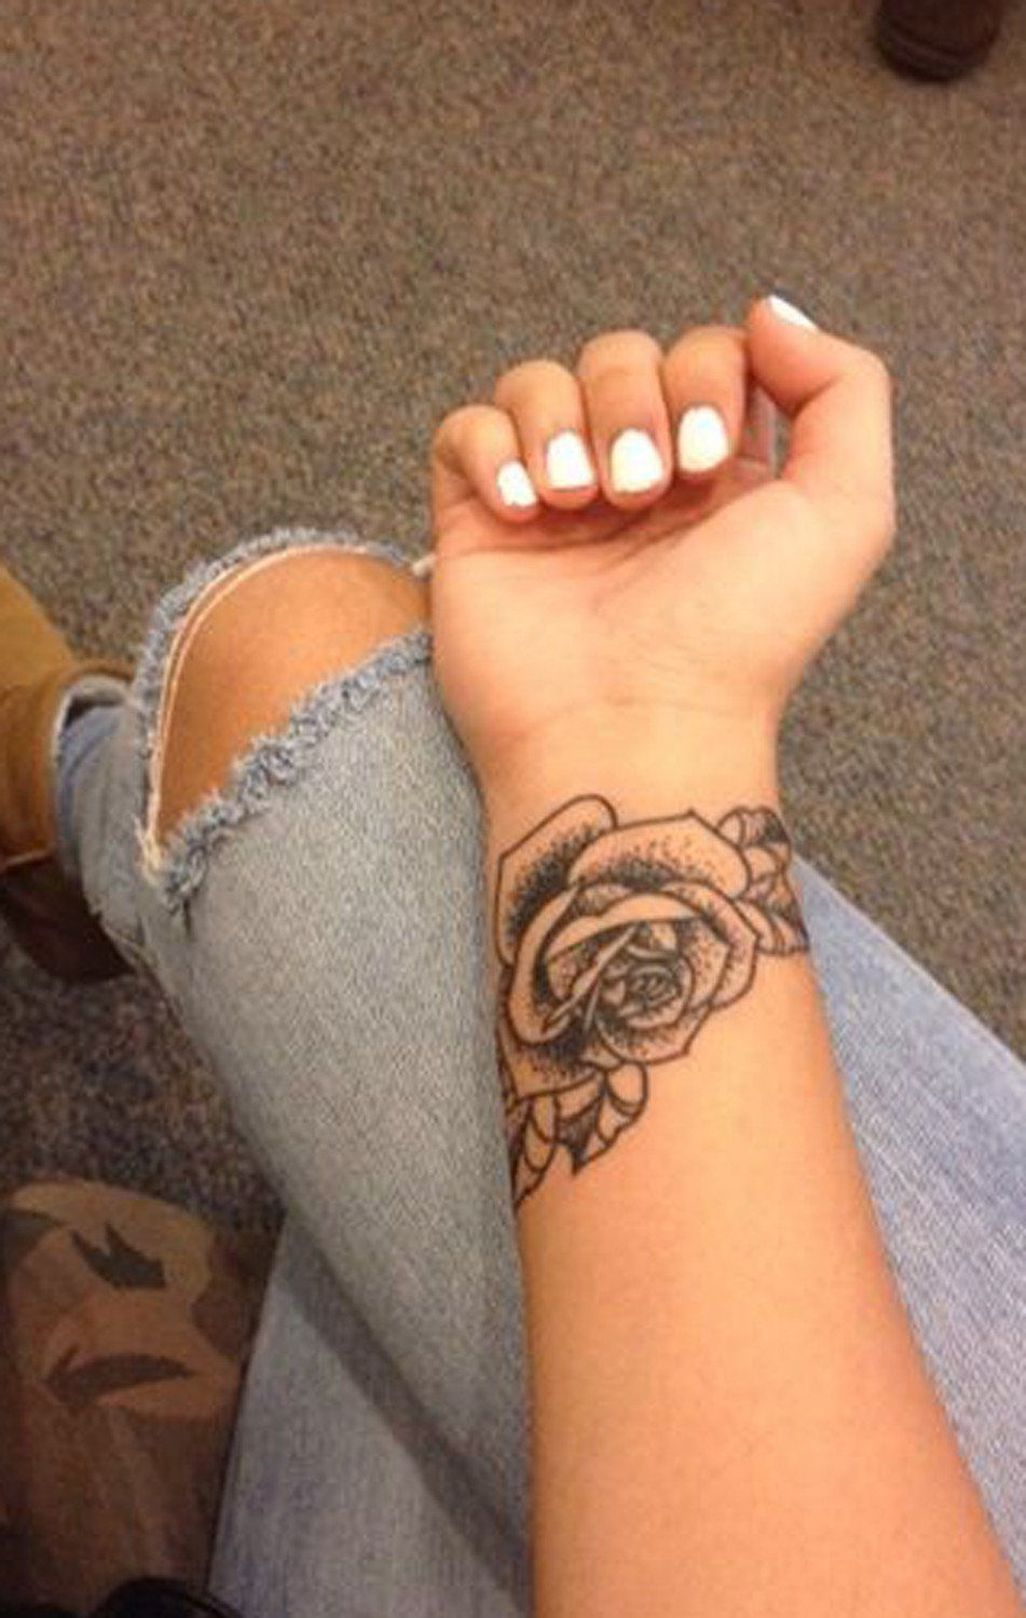 Cool 43 Amazing Arm Tattoo You Can Try More At Https Trend4wear Com 2018 05 13 43 Amazing Rose Tattoos On Wrist Wrist Tattoos For Women Flower Wrist Tattoos